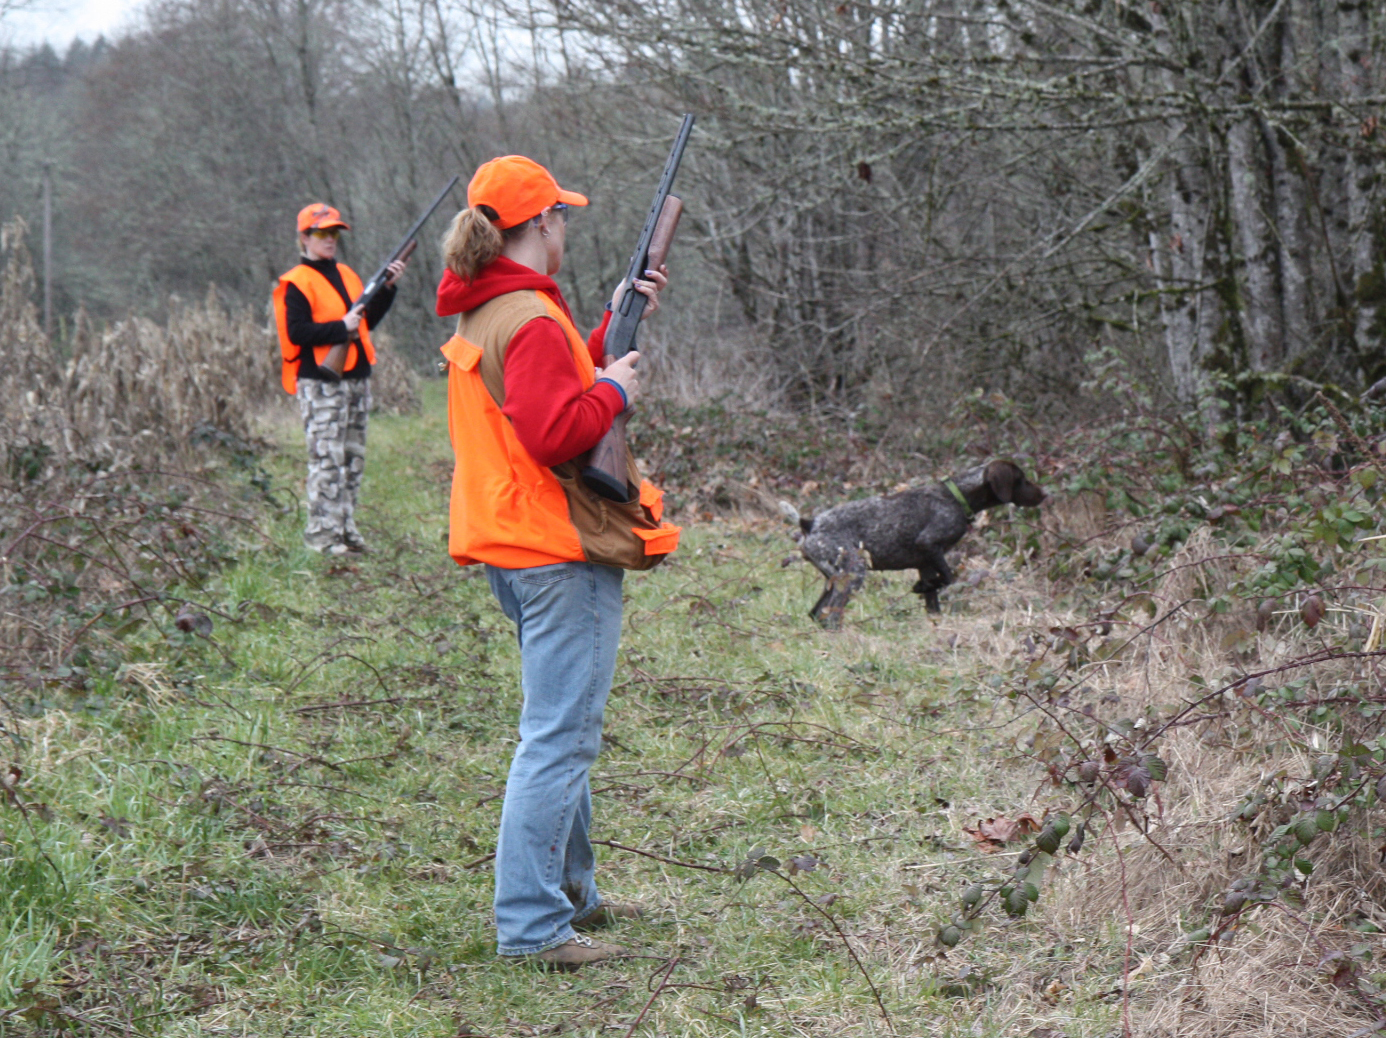 pheasant hunting pictures - HD 1386×1038